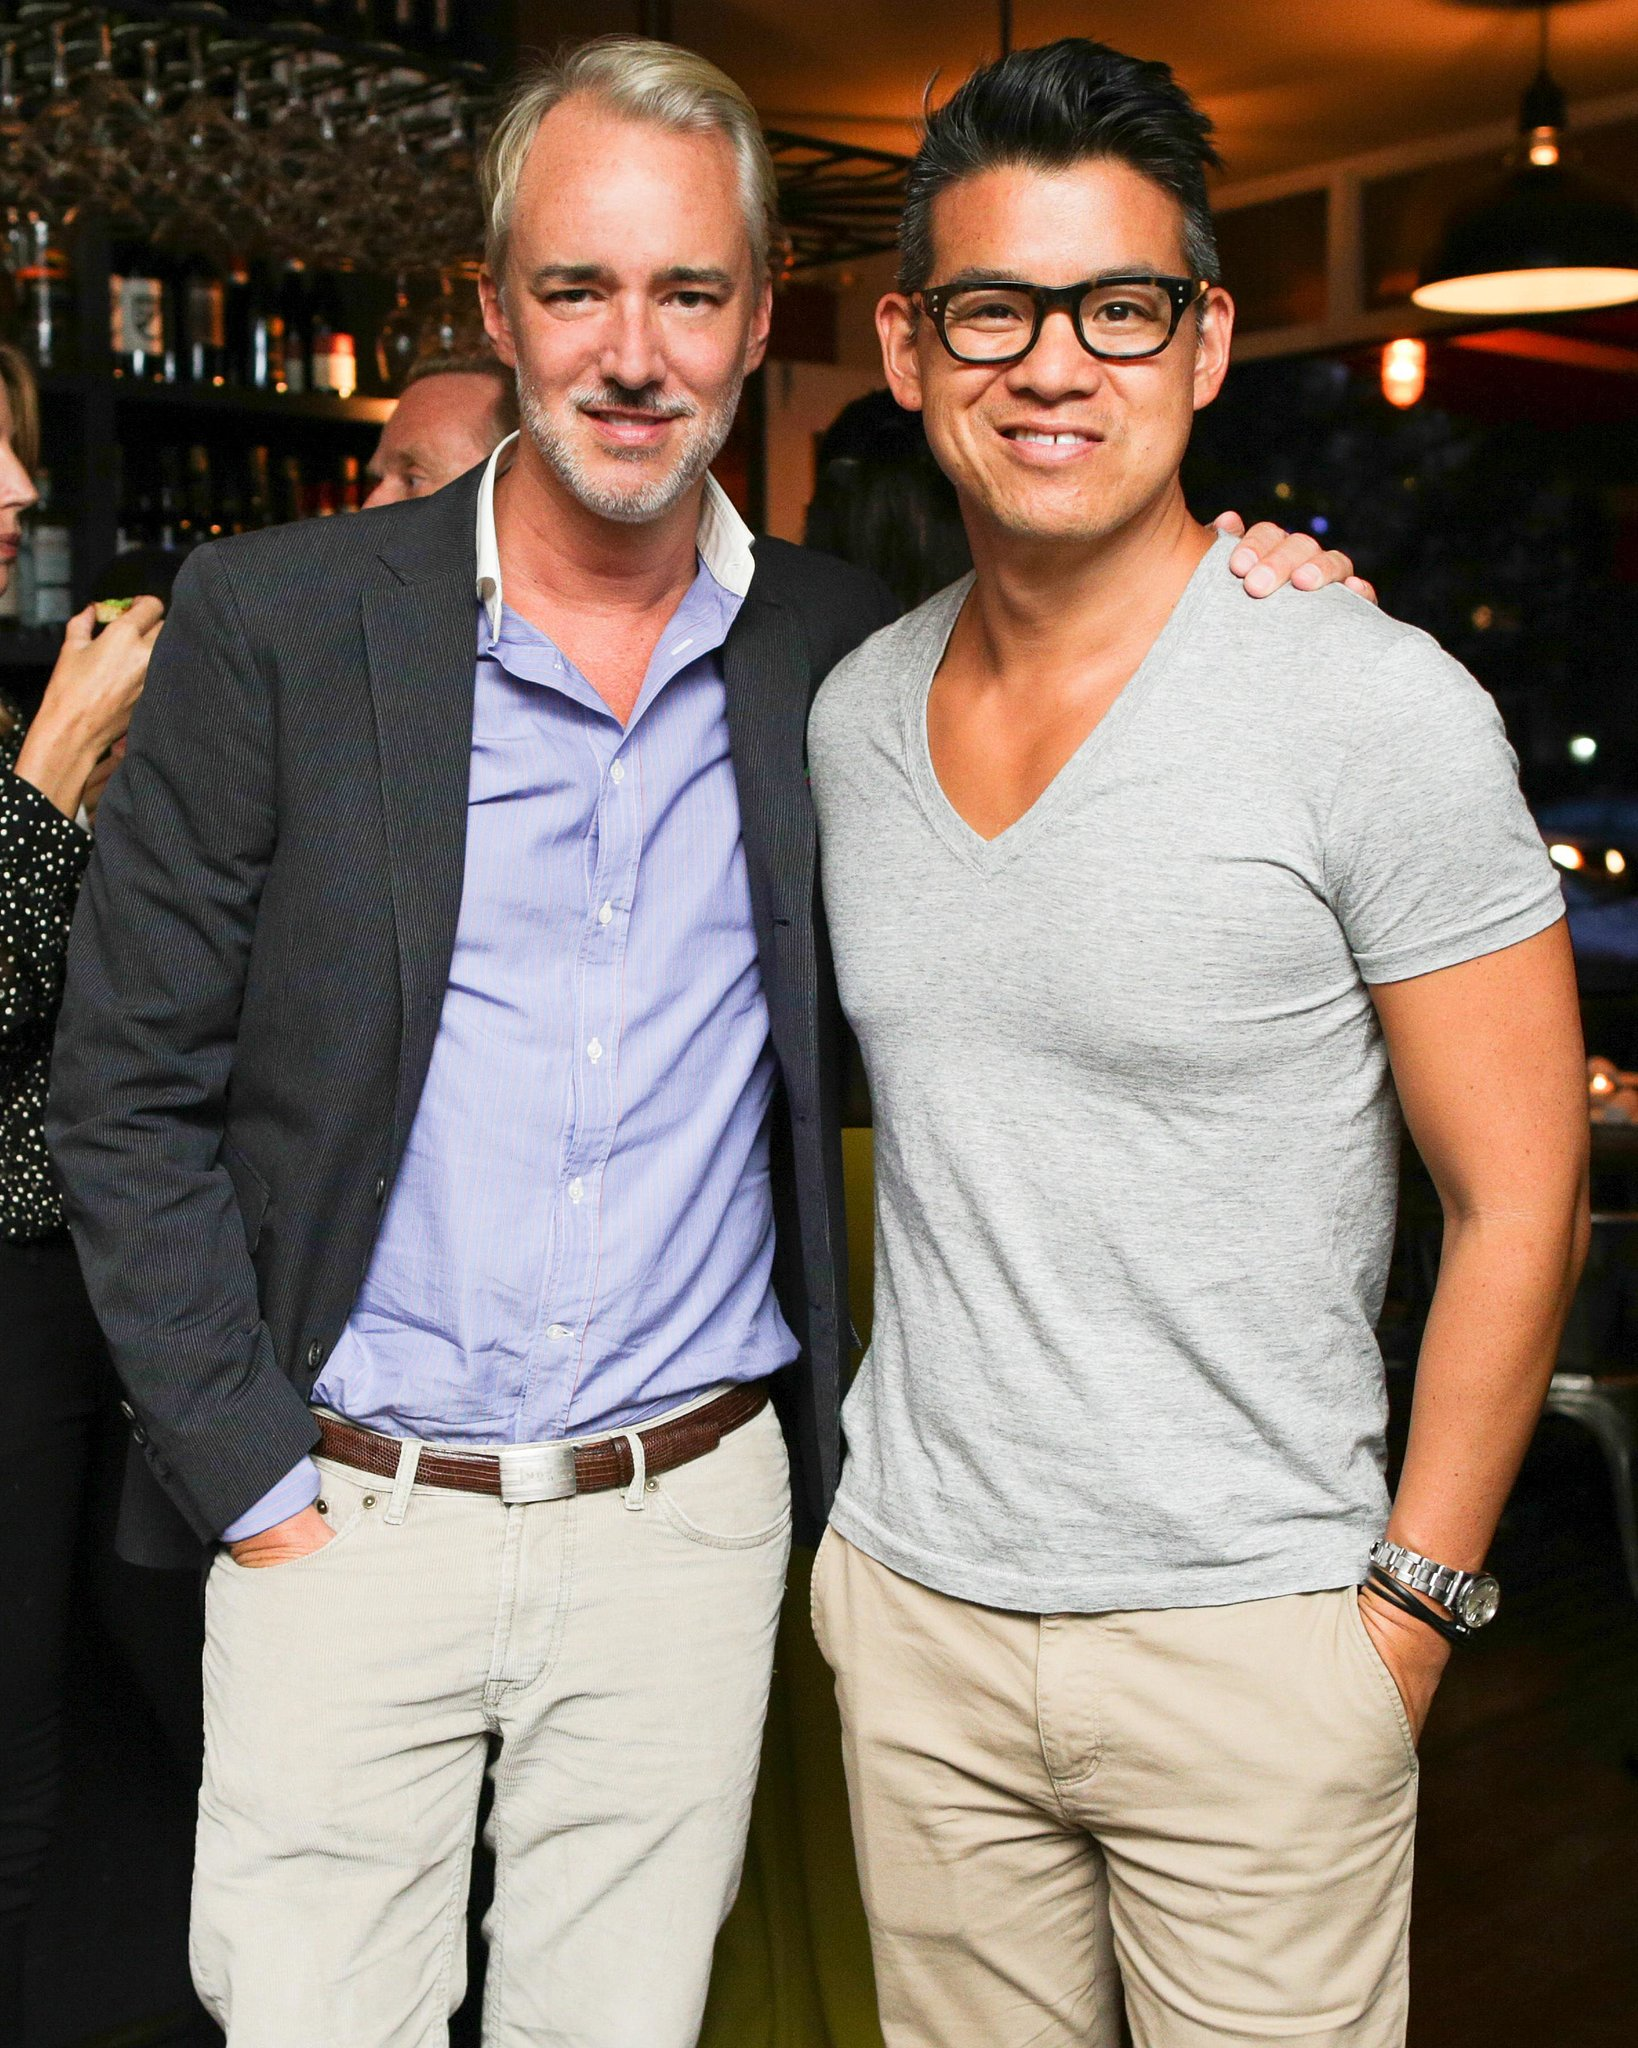 Peter Som dined with Michael Bastian at the designer's New York event.